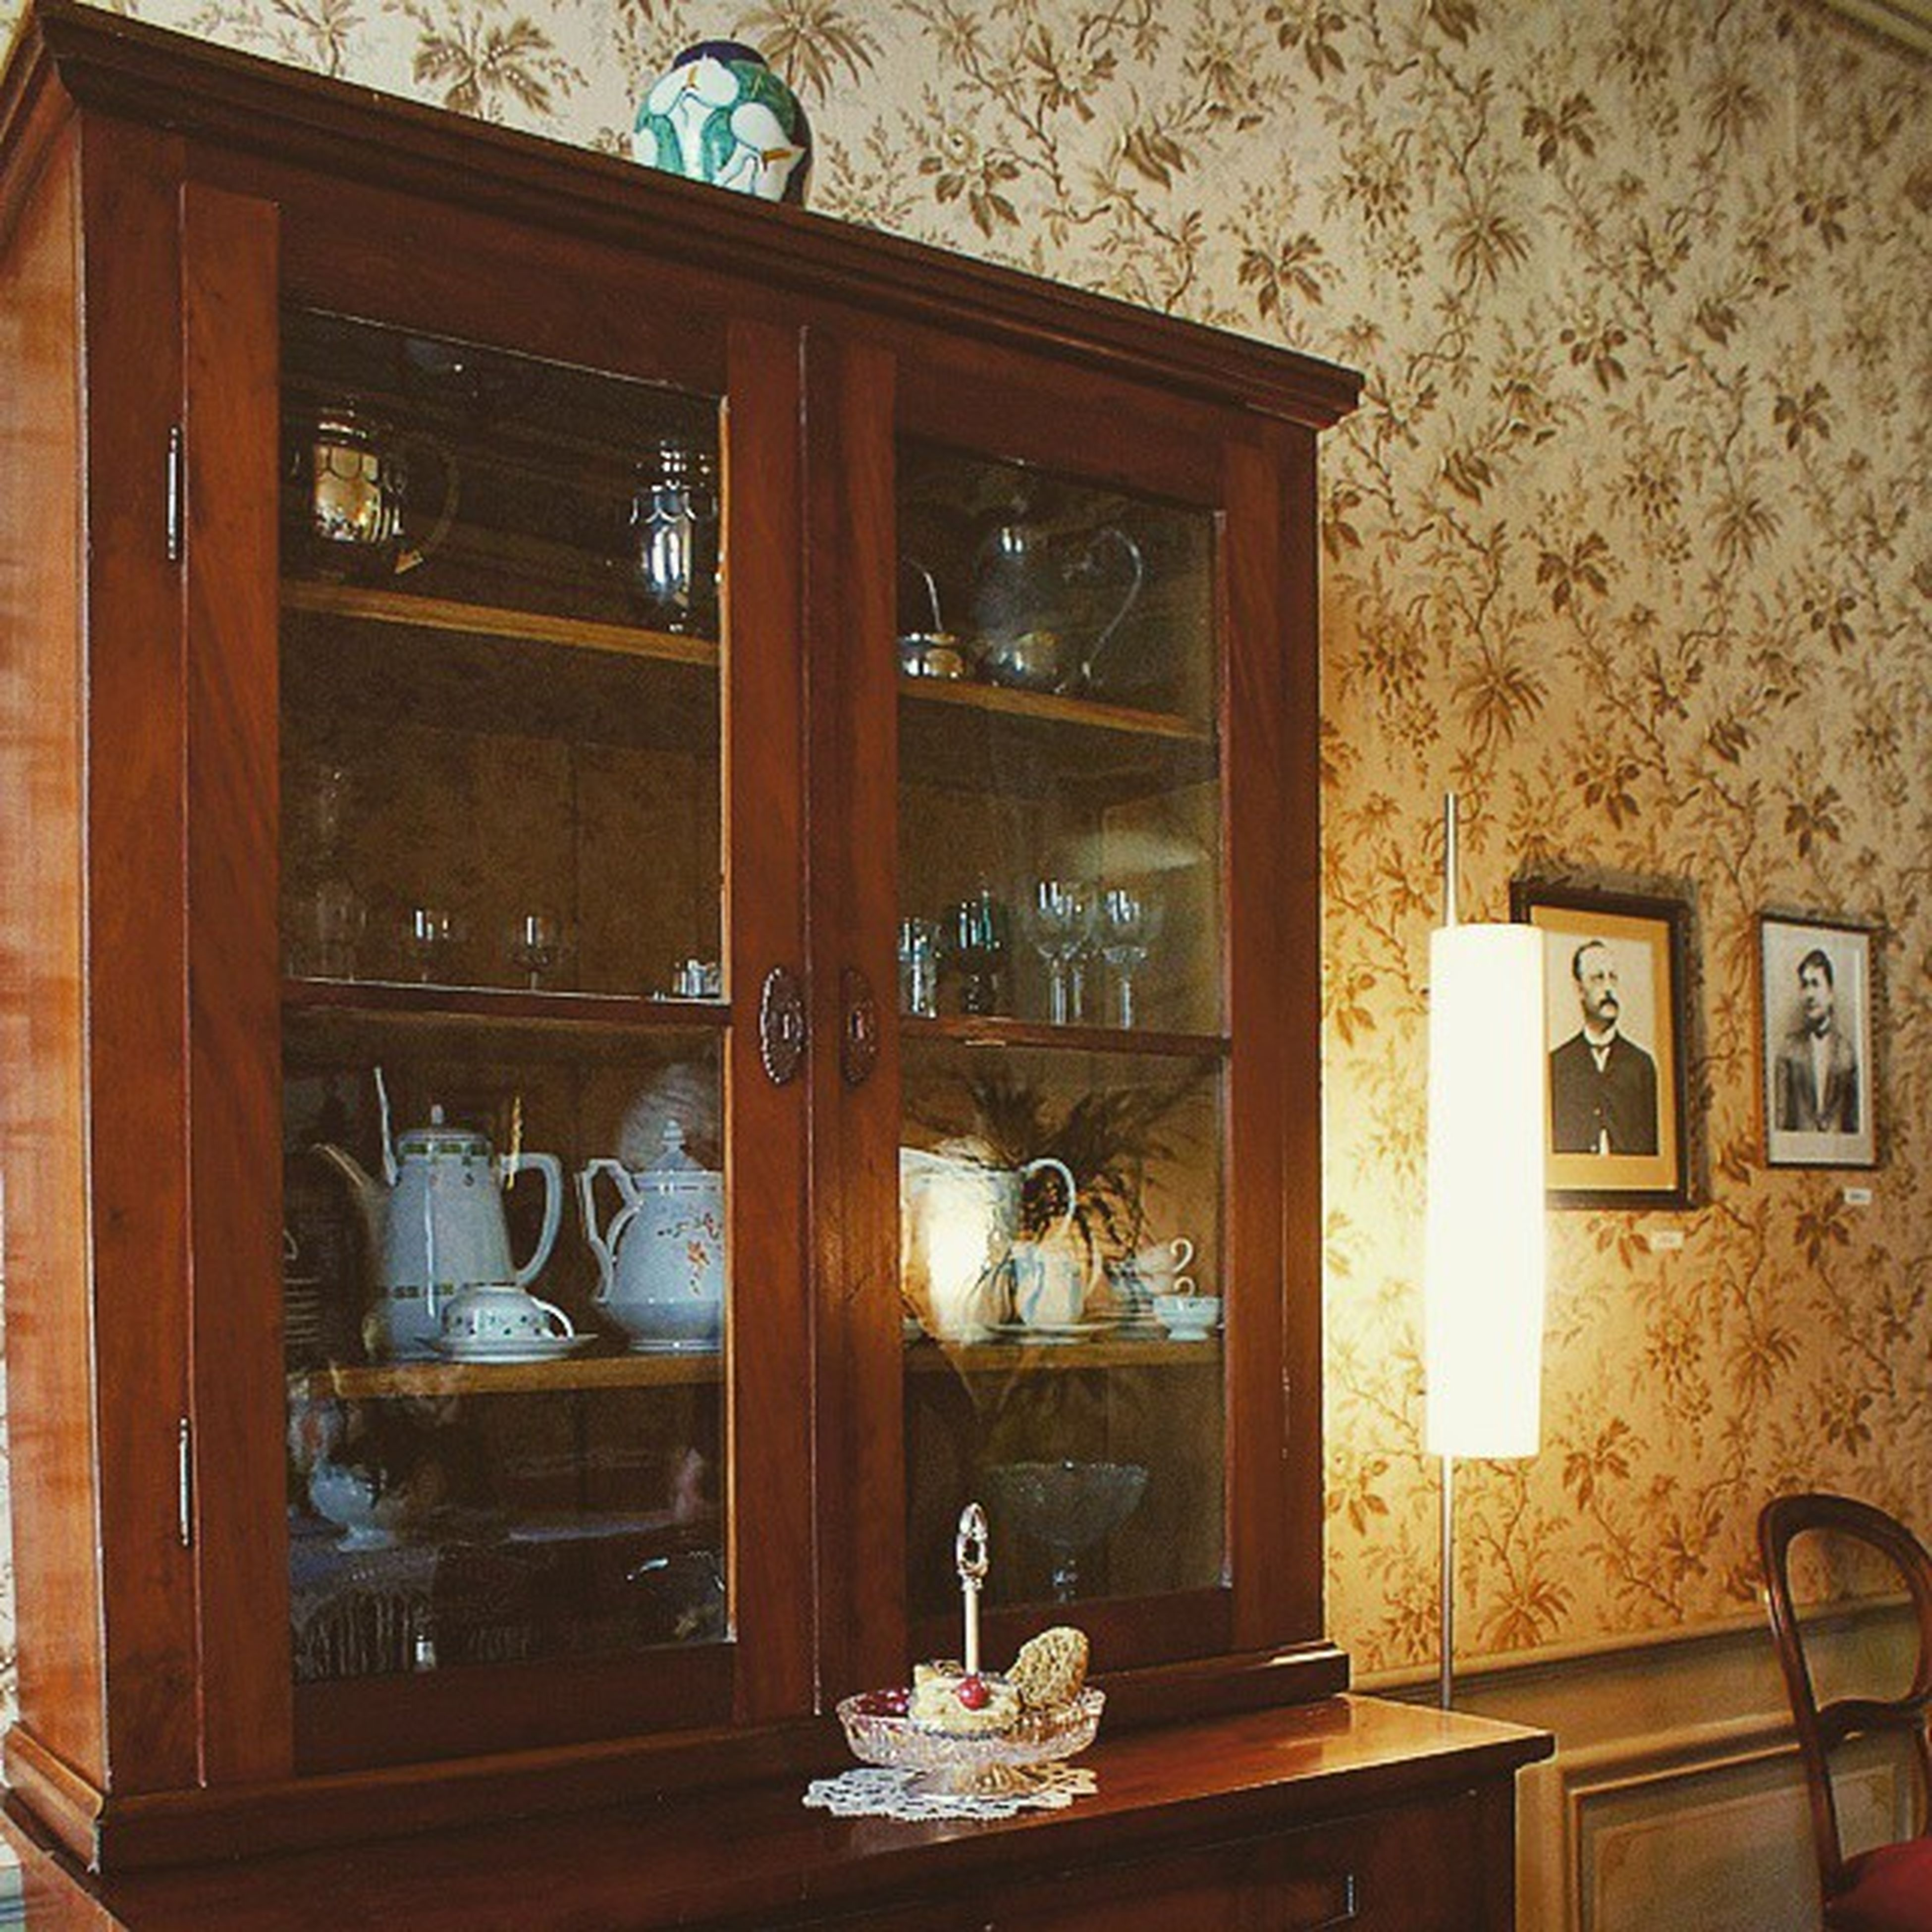 indoors, window, wood - material, glass - material, shelf, door, house, old, home interior, transparent, table, built structure, no people, architecture, old-fashioned, still life, closed, reflection, wooden, curtain